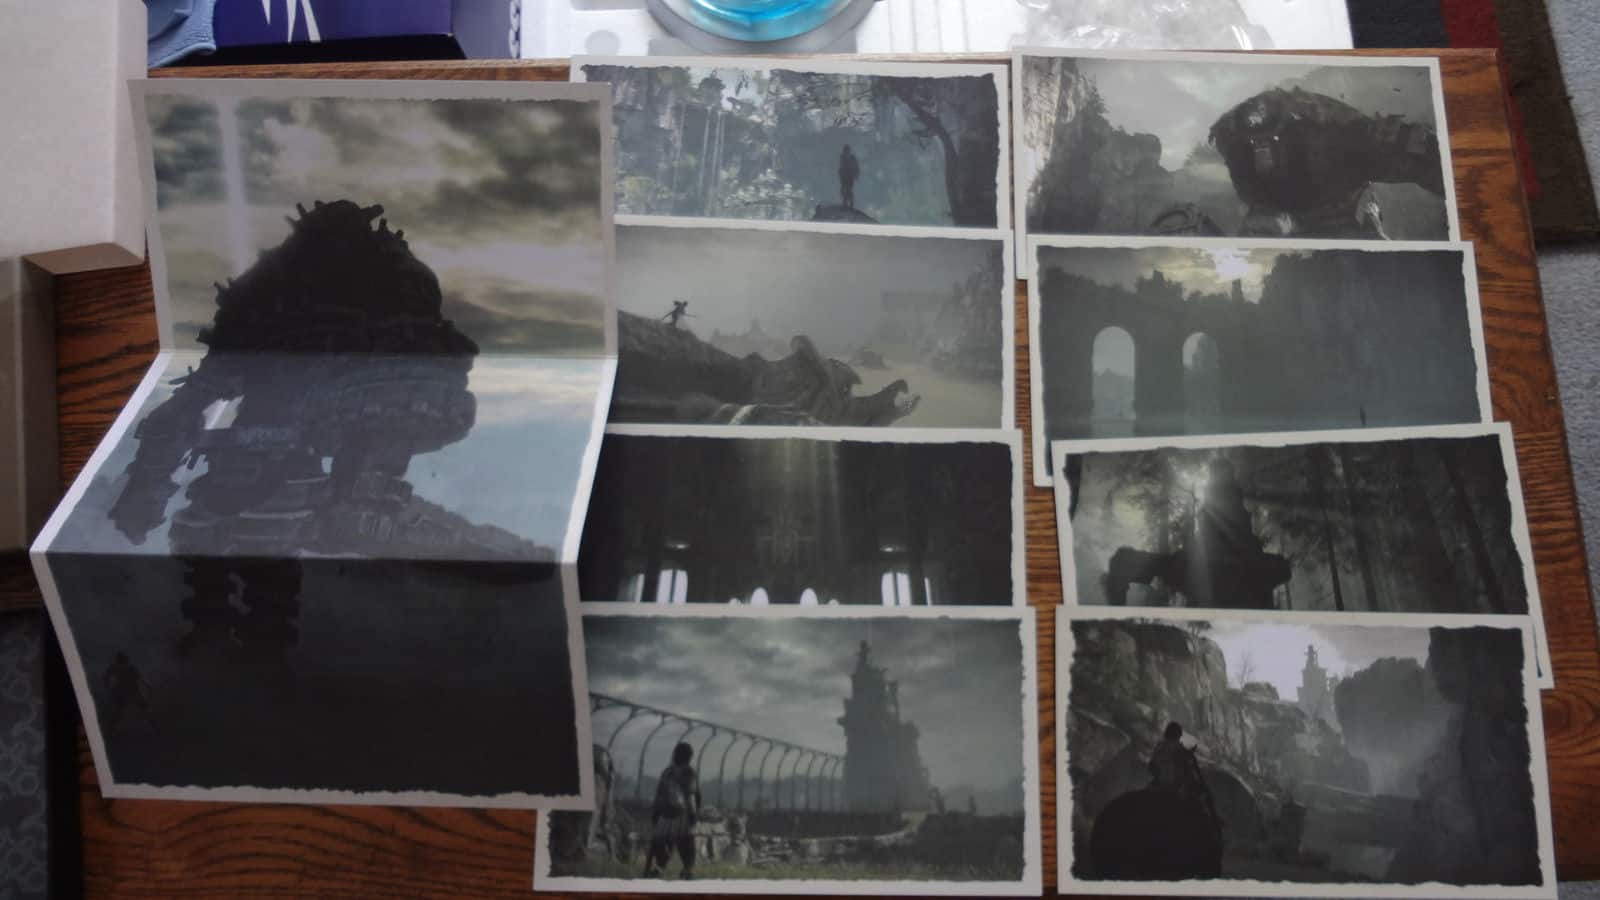 Shadow of the Colossus Limited Edition Promo Press Kit - Rare Promotional Kit 6